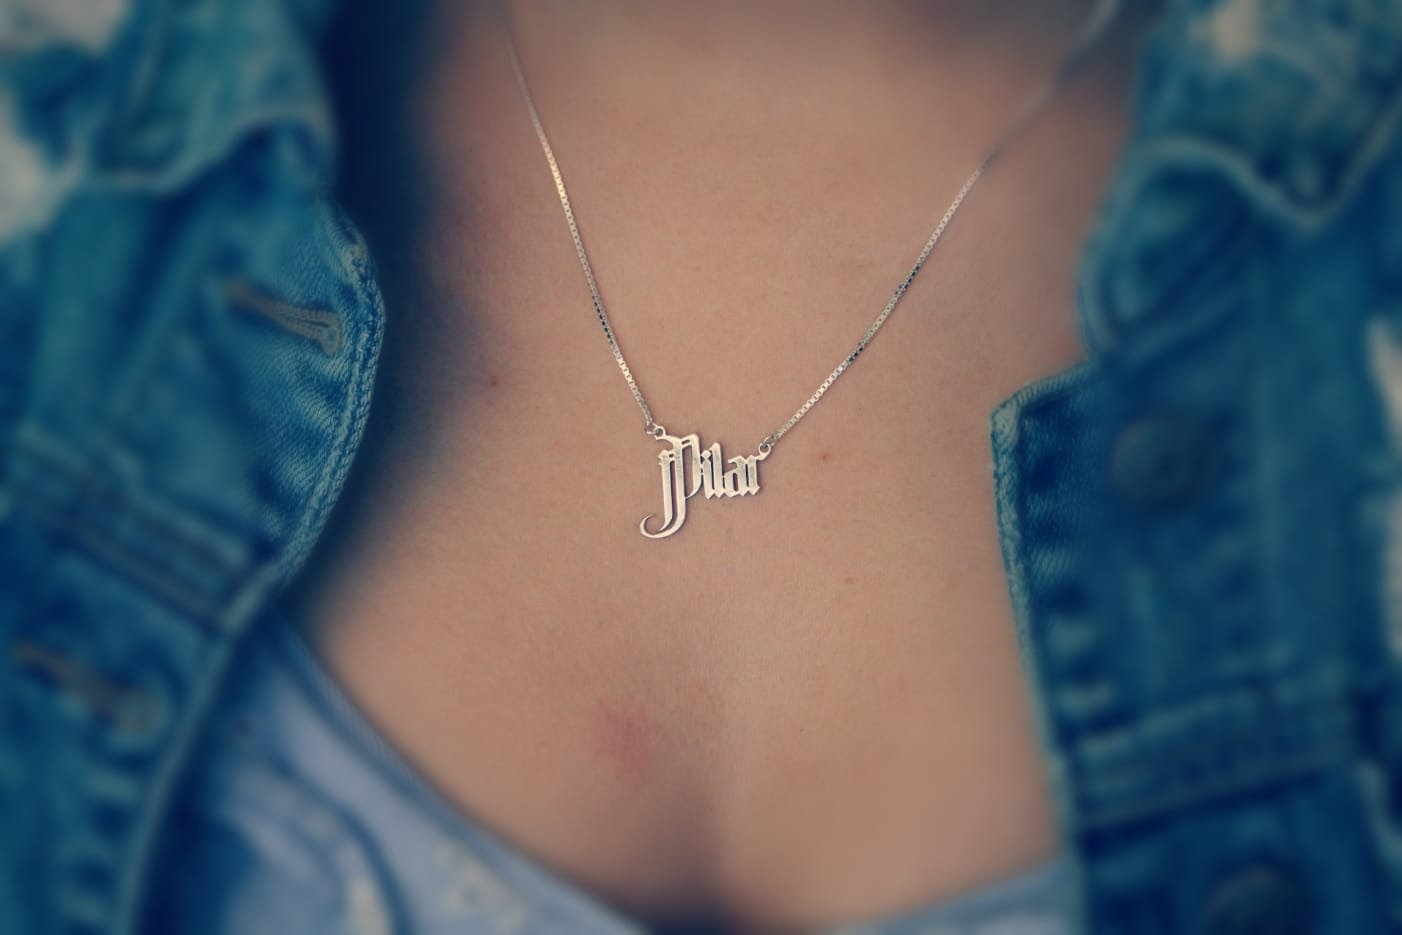 CHN01 - Chola Name Necklace